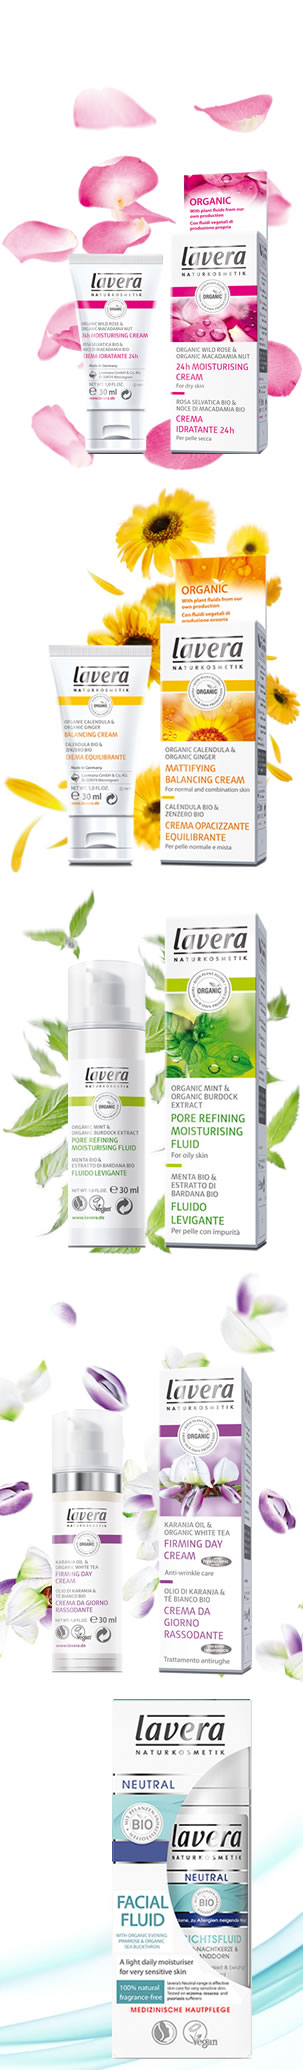 Lavera Organic & Natural Cosmetics and Skin Care - What is my skin type?